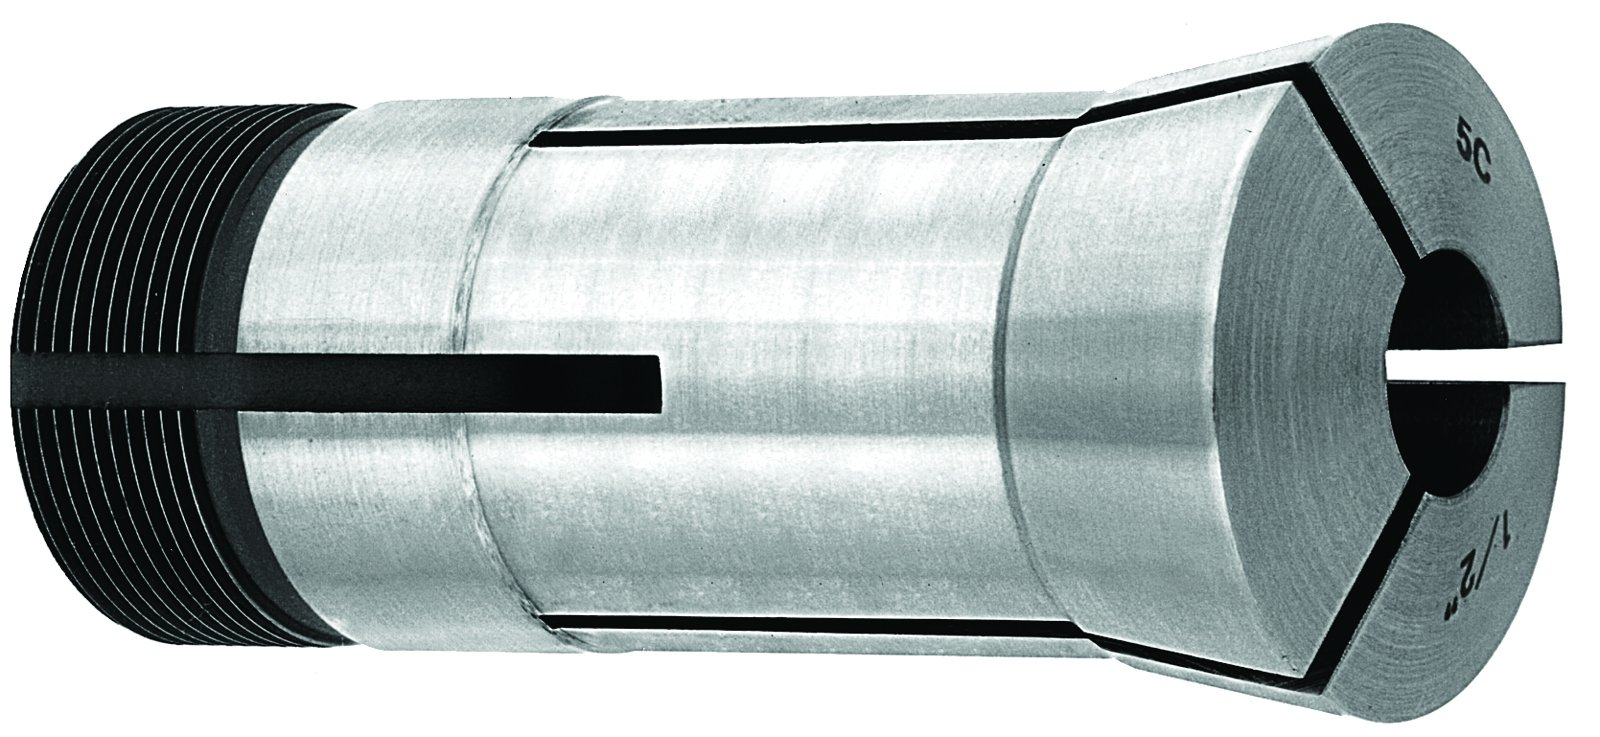 5-C Collets - Round - 17mm by European Collet